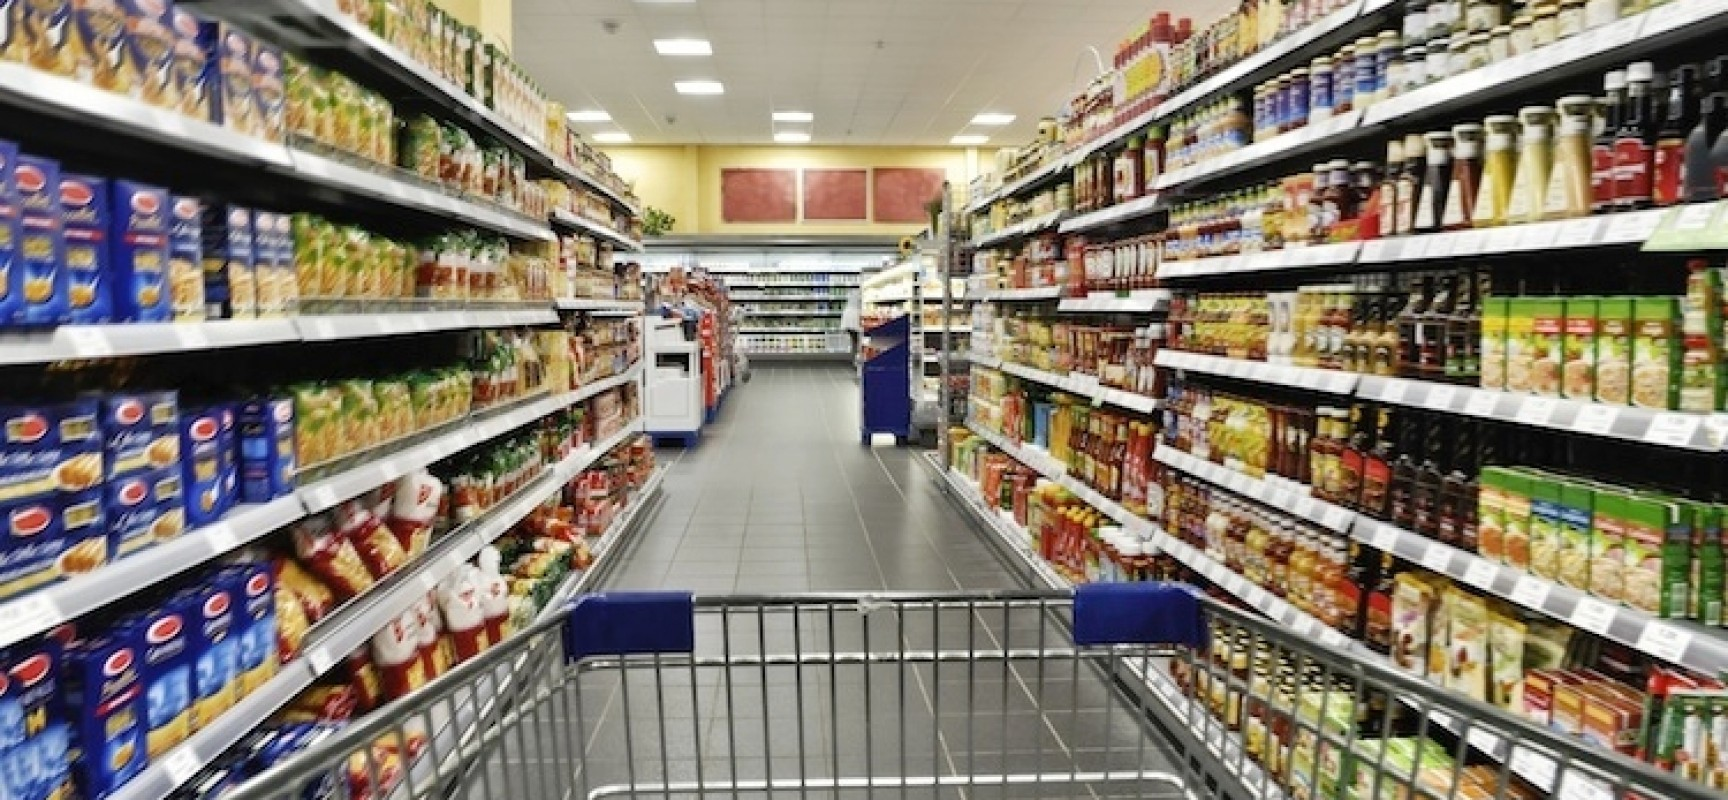 IMMAGINE Discount o Supermercato h24? Il grande dilemma Shapper